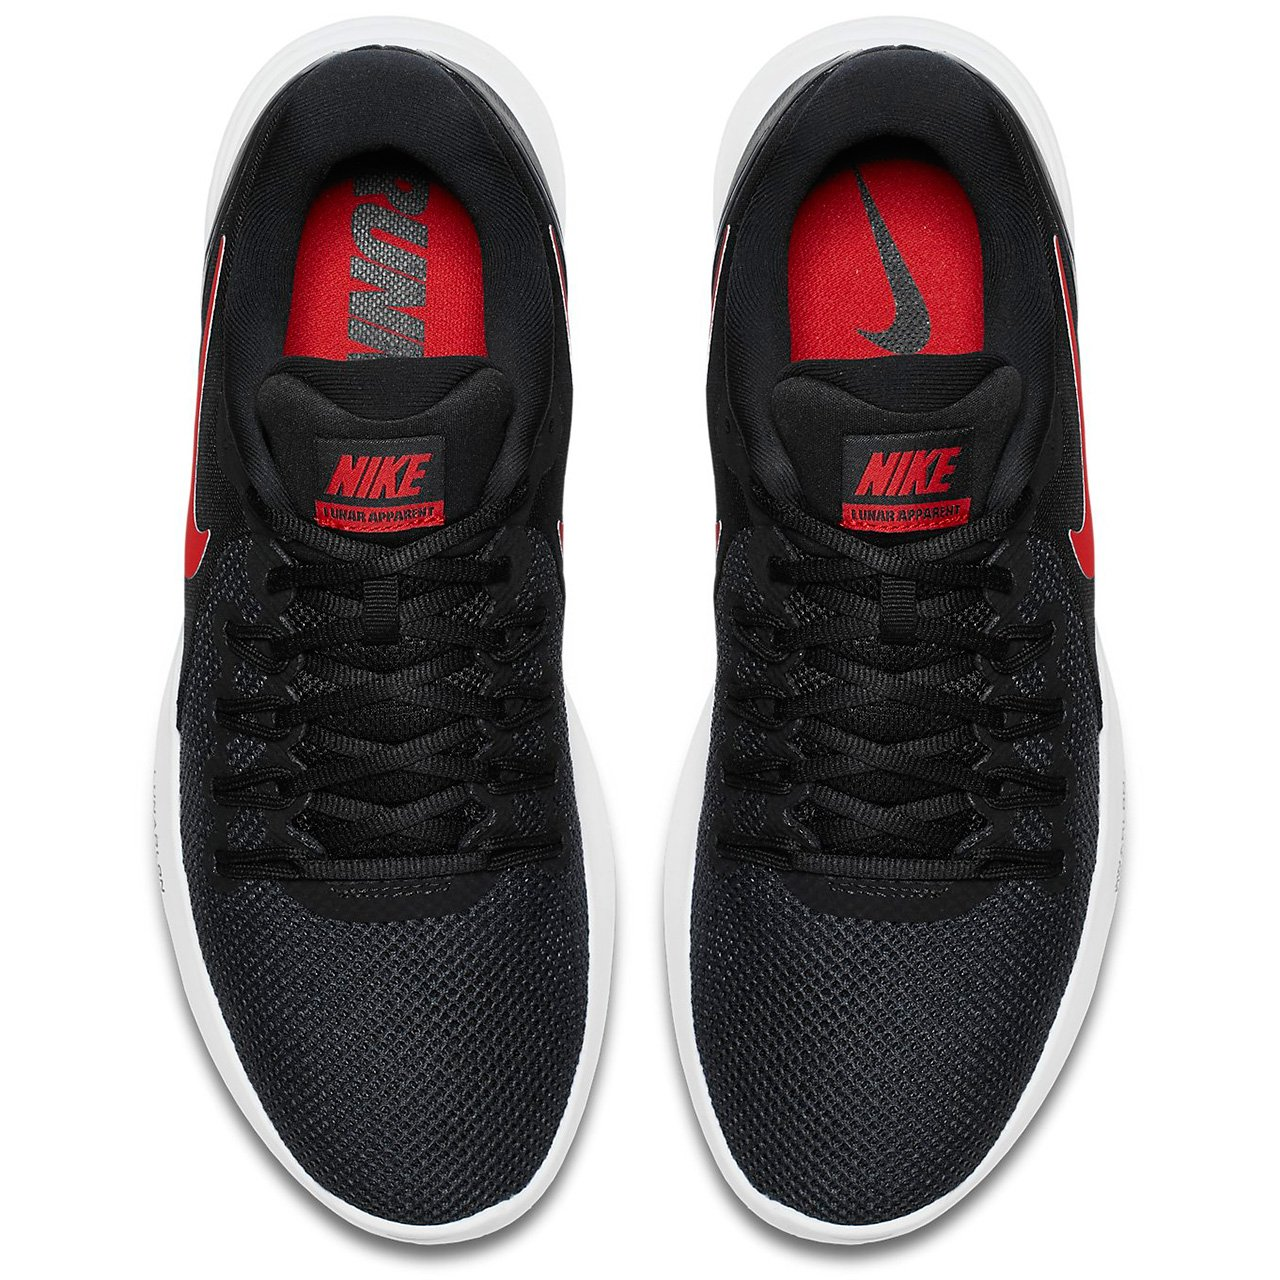 NIKE Lunar Apparent Mens Running Shoes B06WP57N68 10.5 D(M) US|Black Red Anthracite White